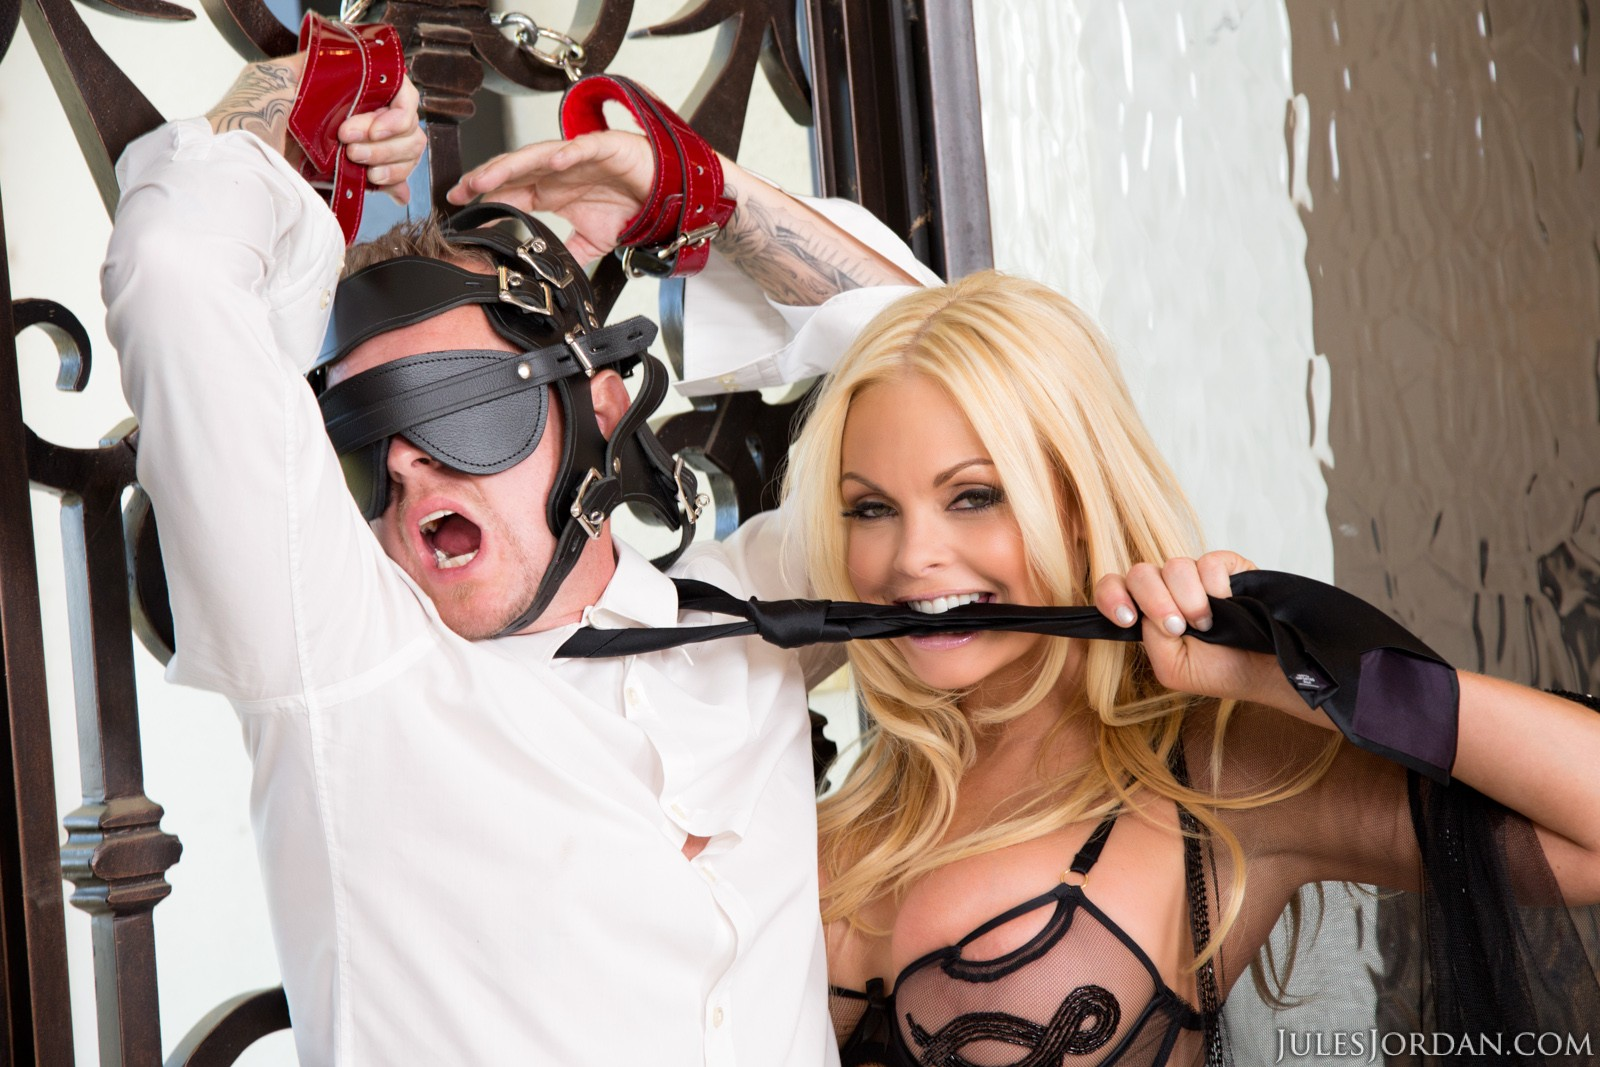 Frenchkising malayalam jesse jane tied up sex pictures